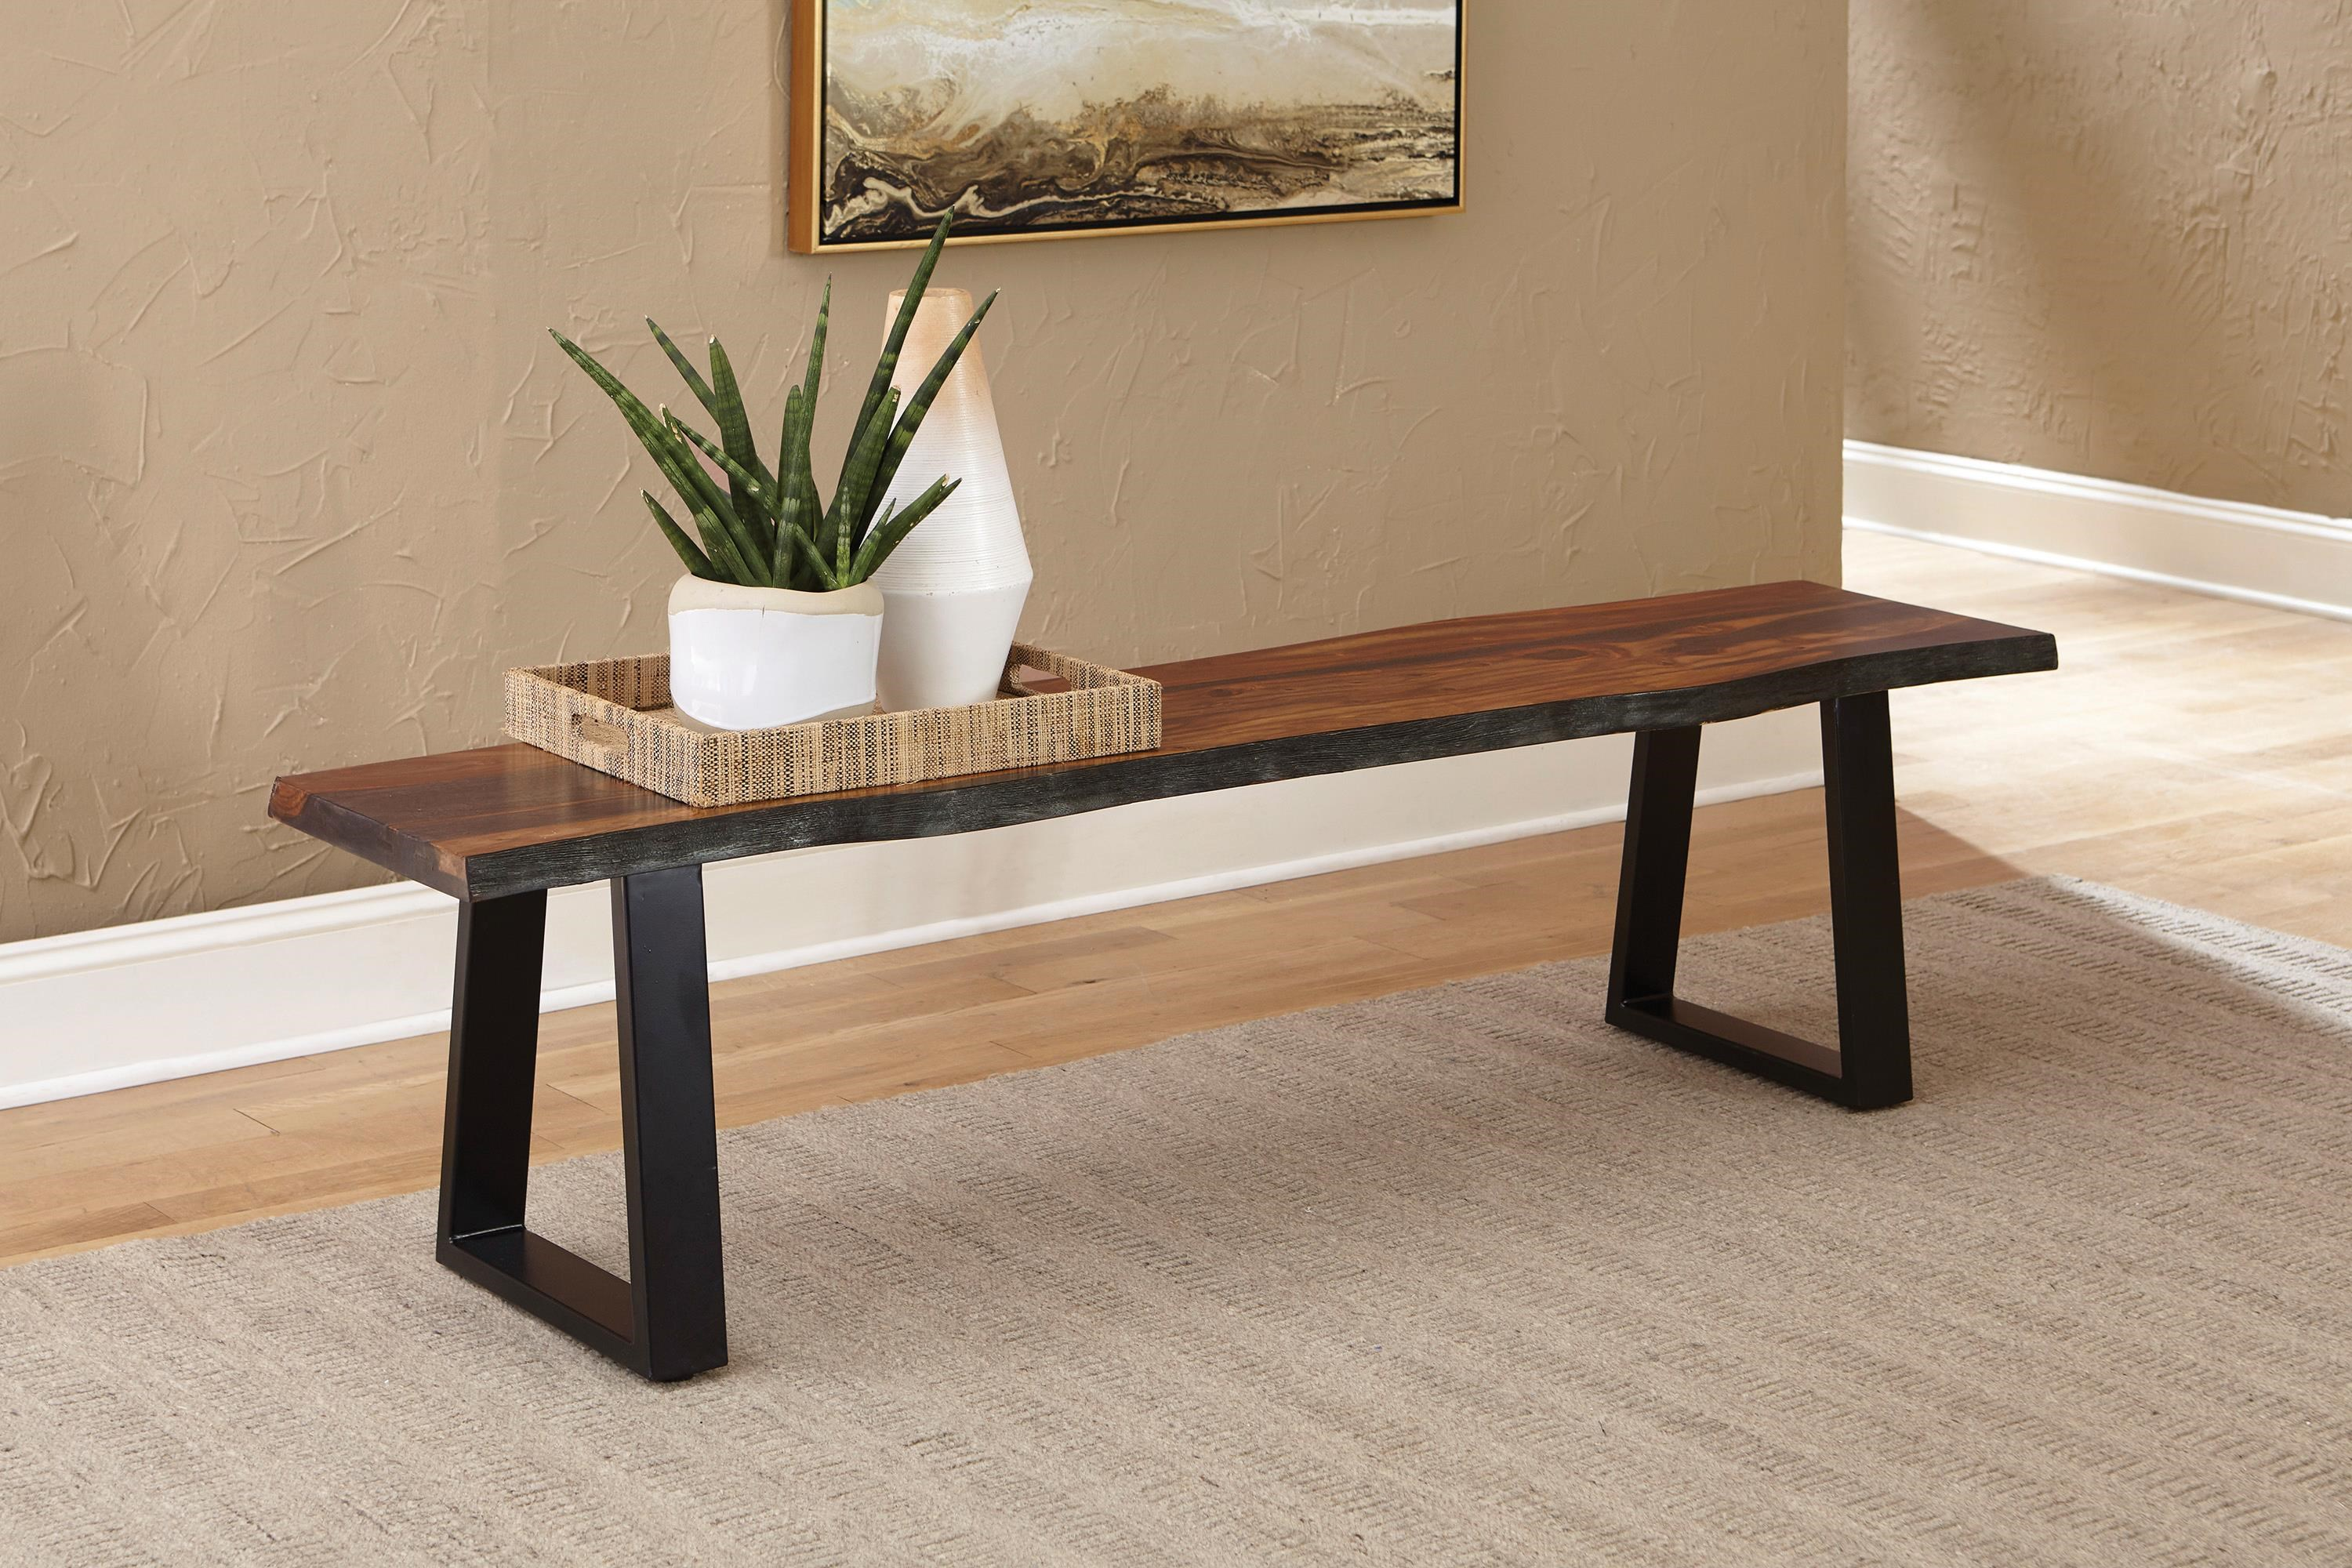 Everyday Ditman Rustic Bench by Coaster at HomeWorld Furniture